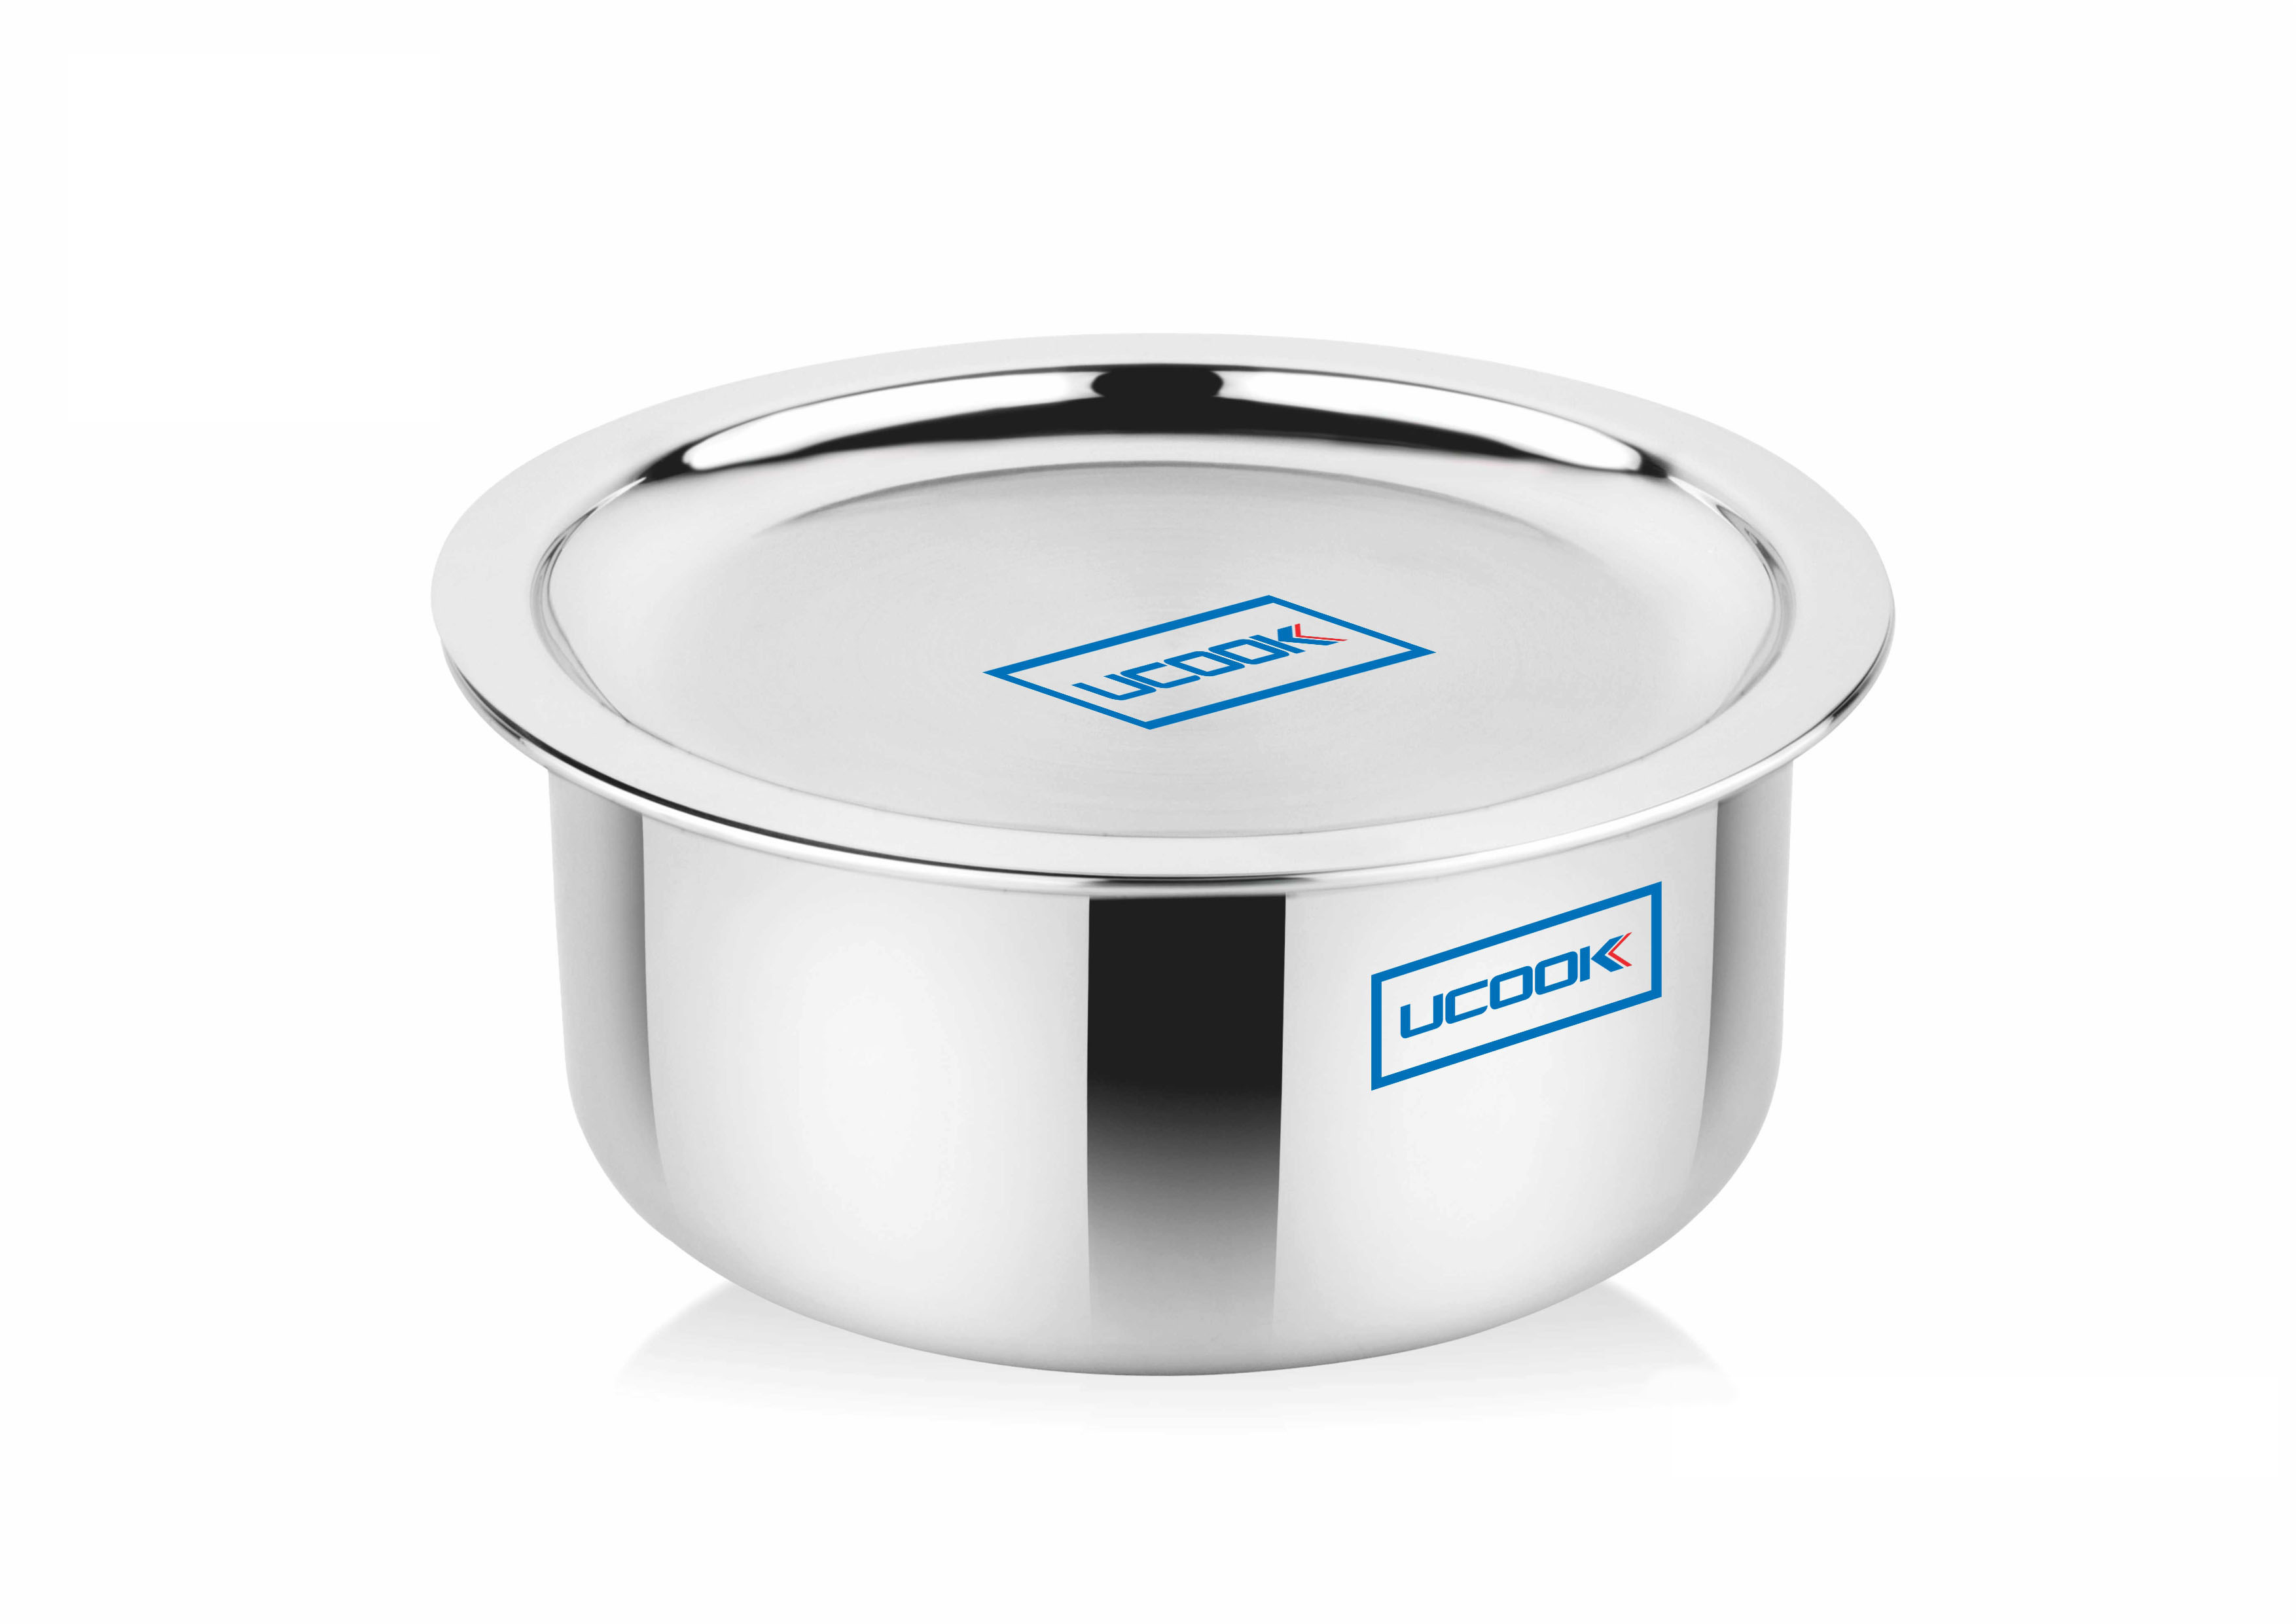 Cookware Premium- UCOOK SS Triply Tope induction compatible with Lid